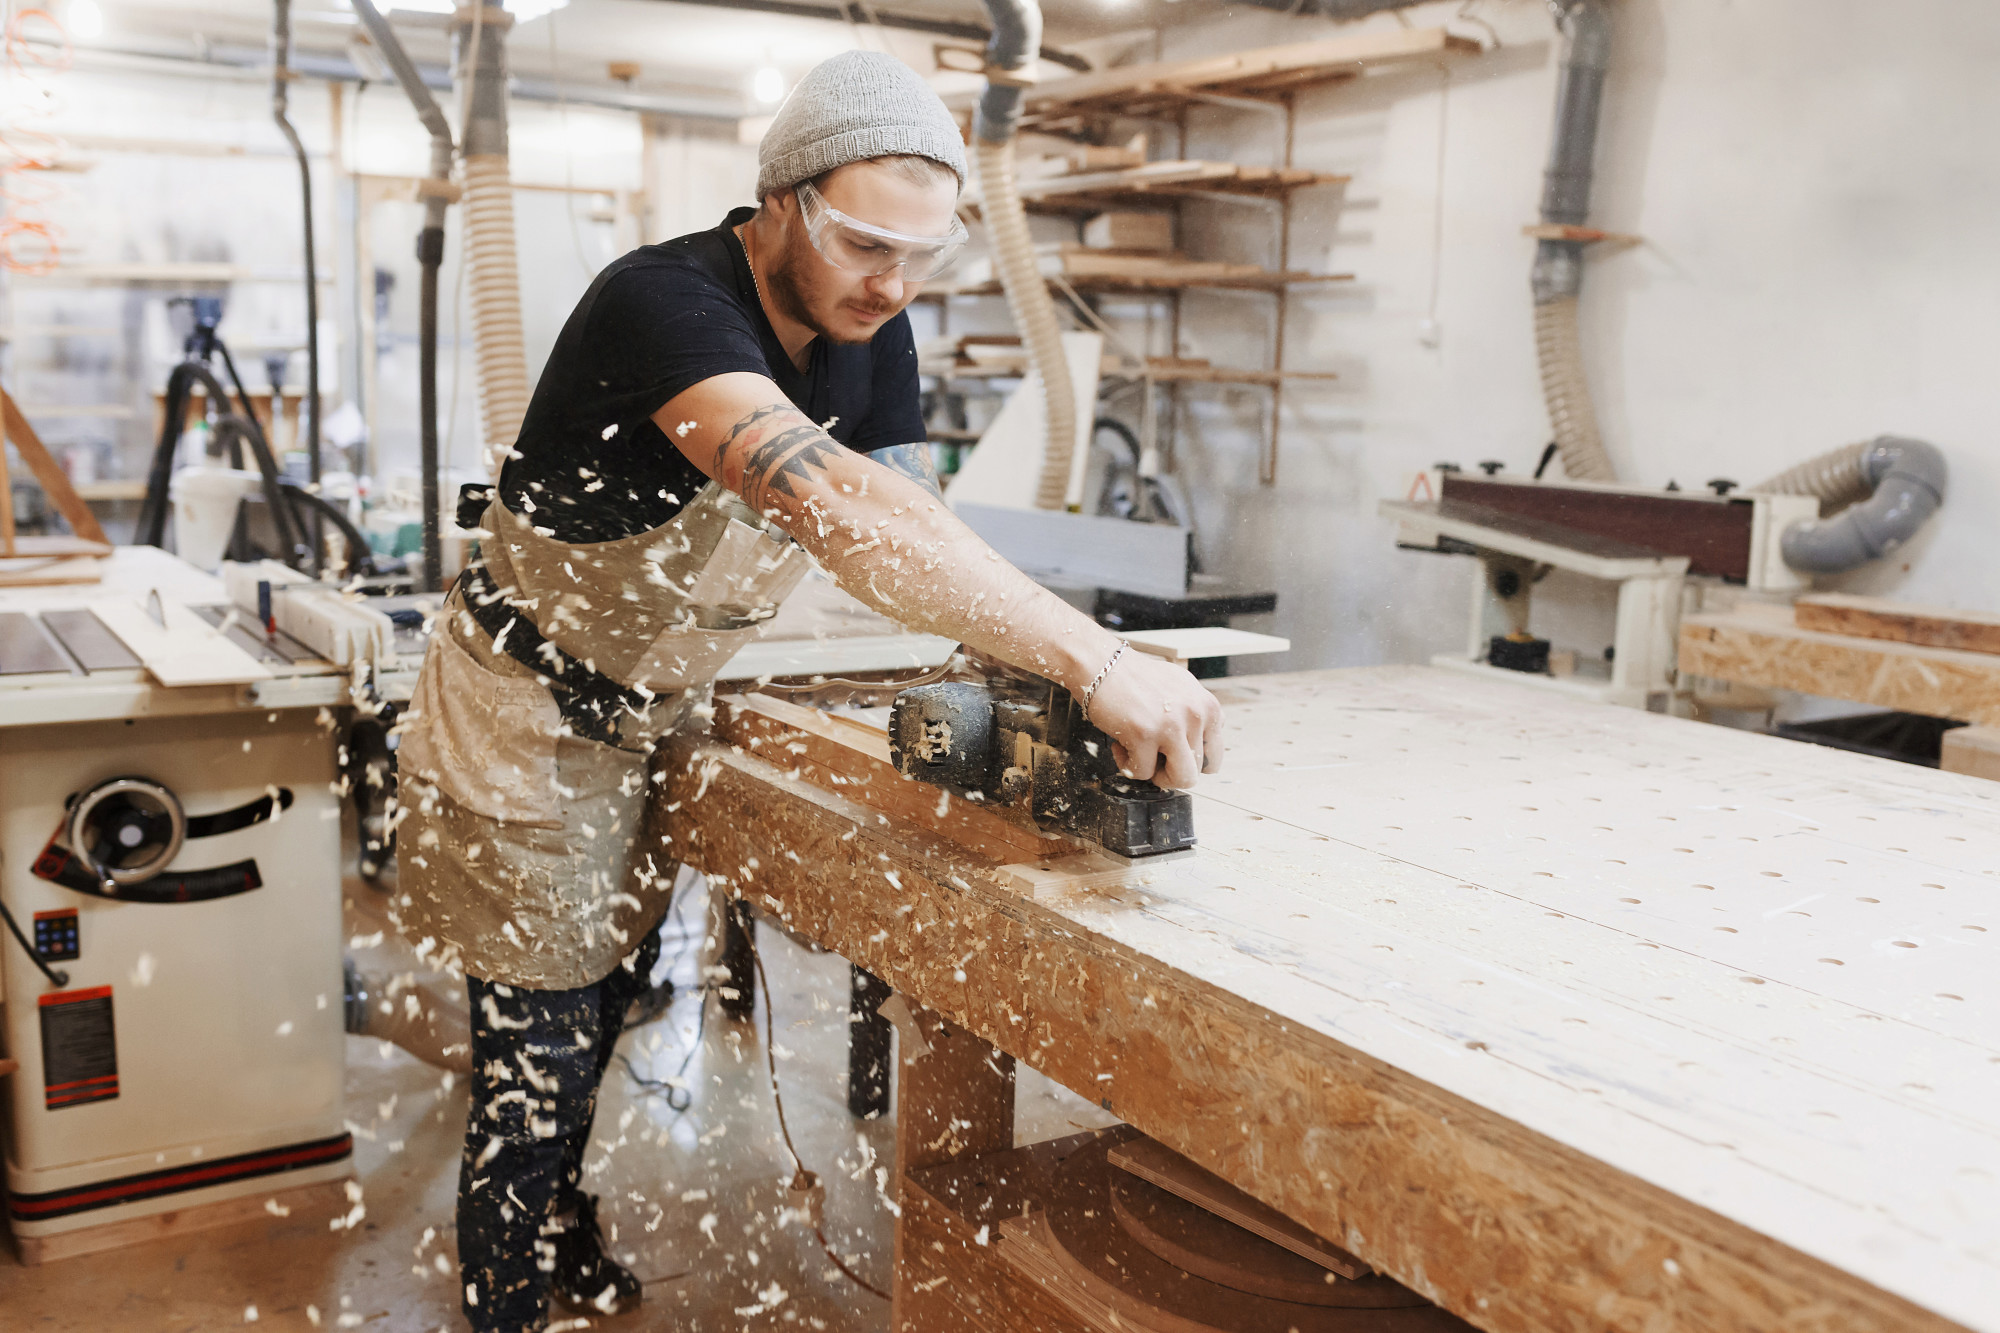 Carpenter Working with Electric Planer on Wooden Plank